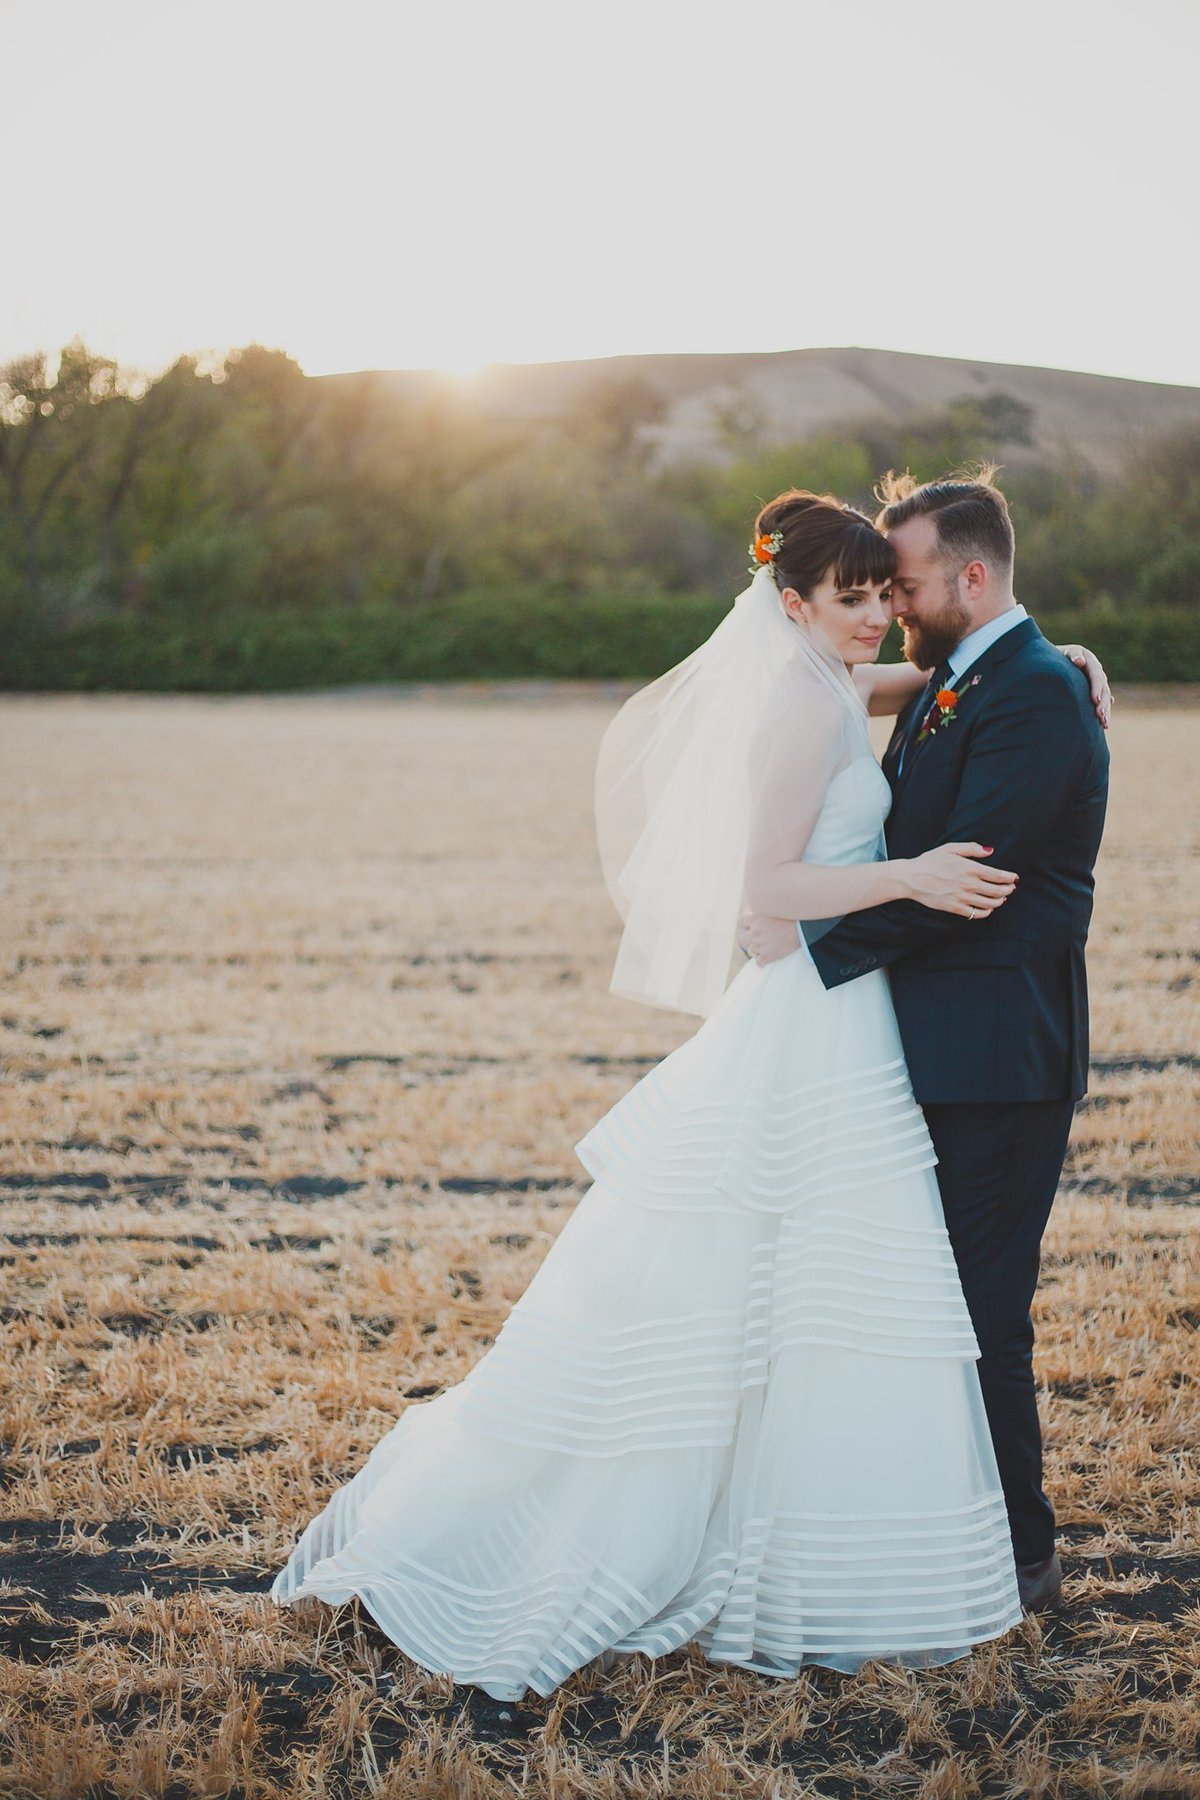 los-olivos-wedding-photography-emily-gunn-27_web